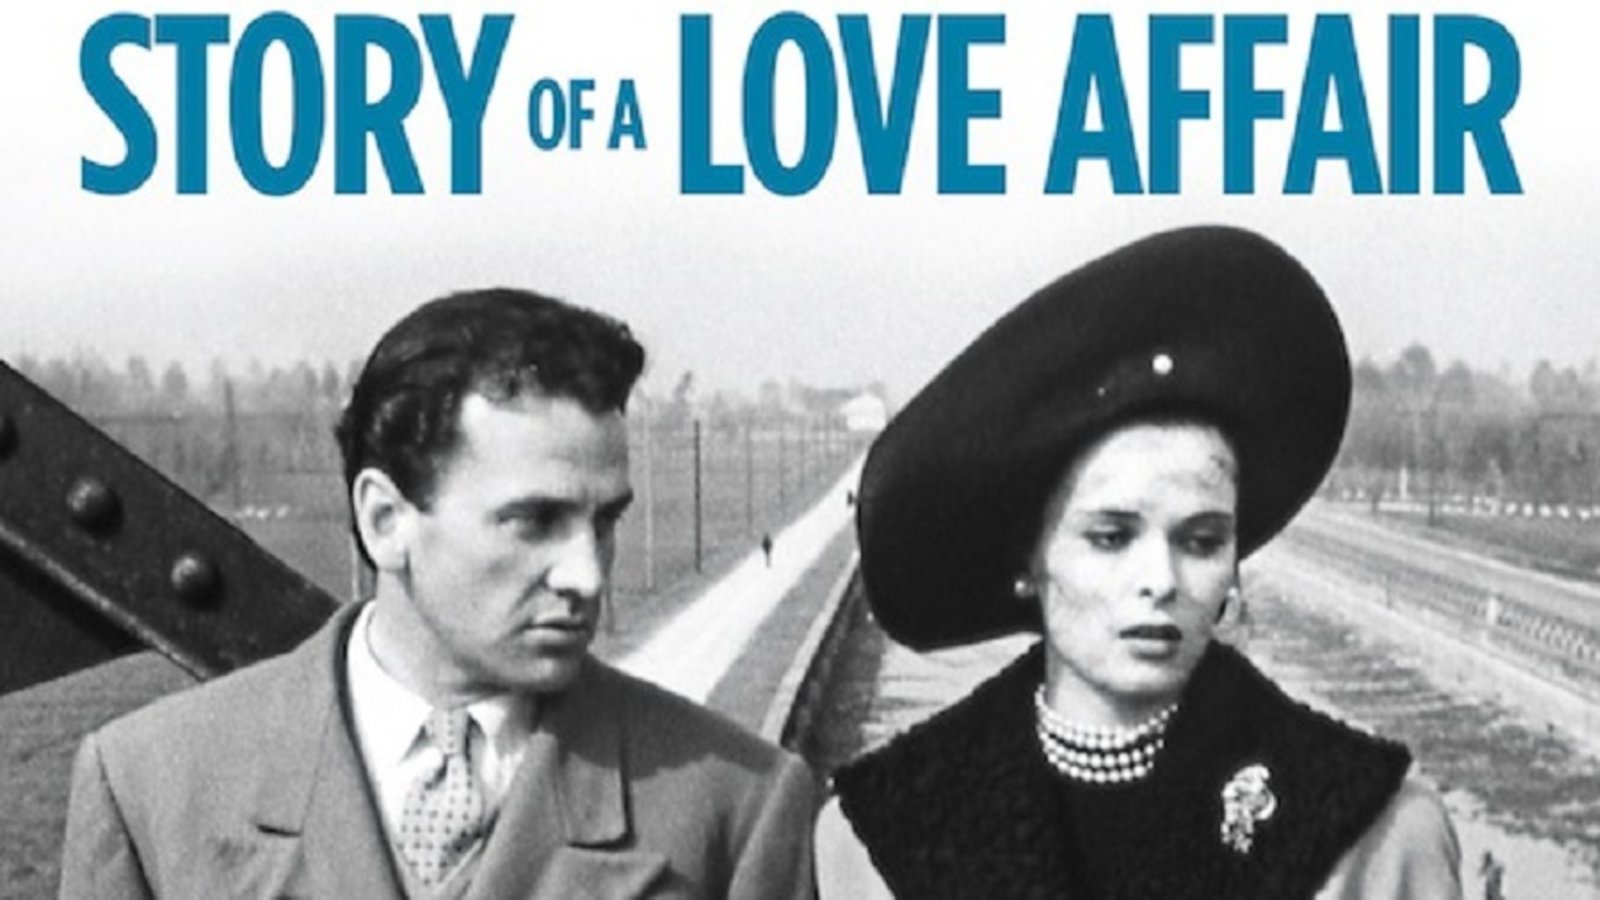 Story Of A Love Affair